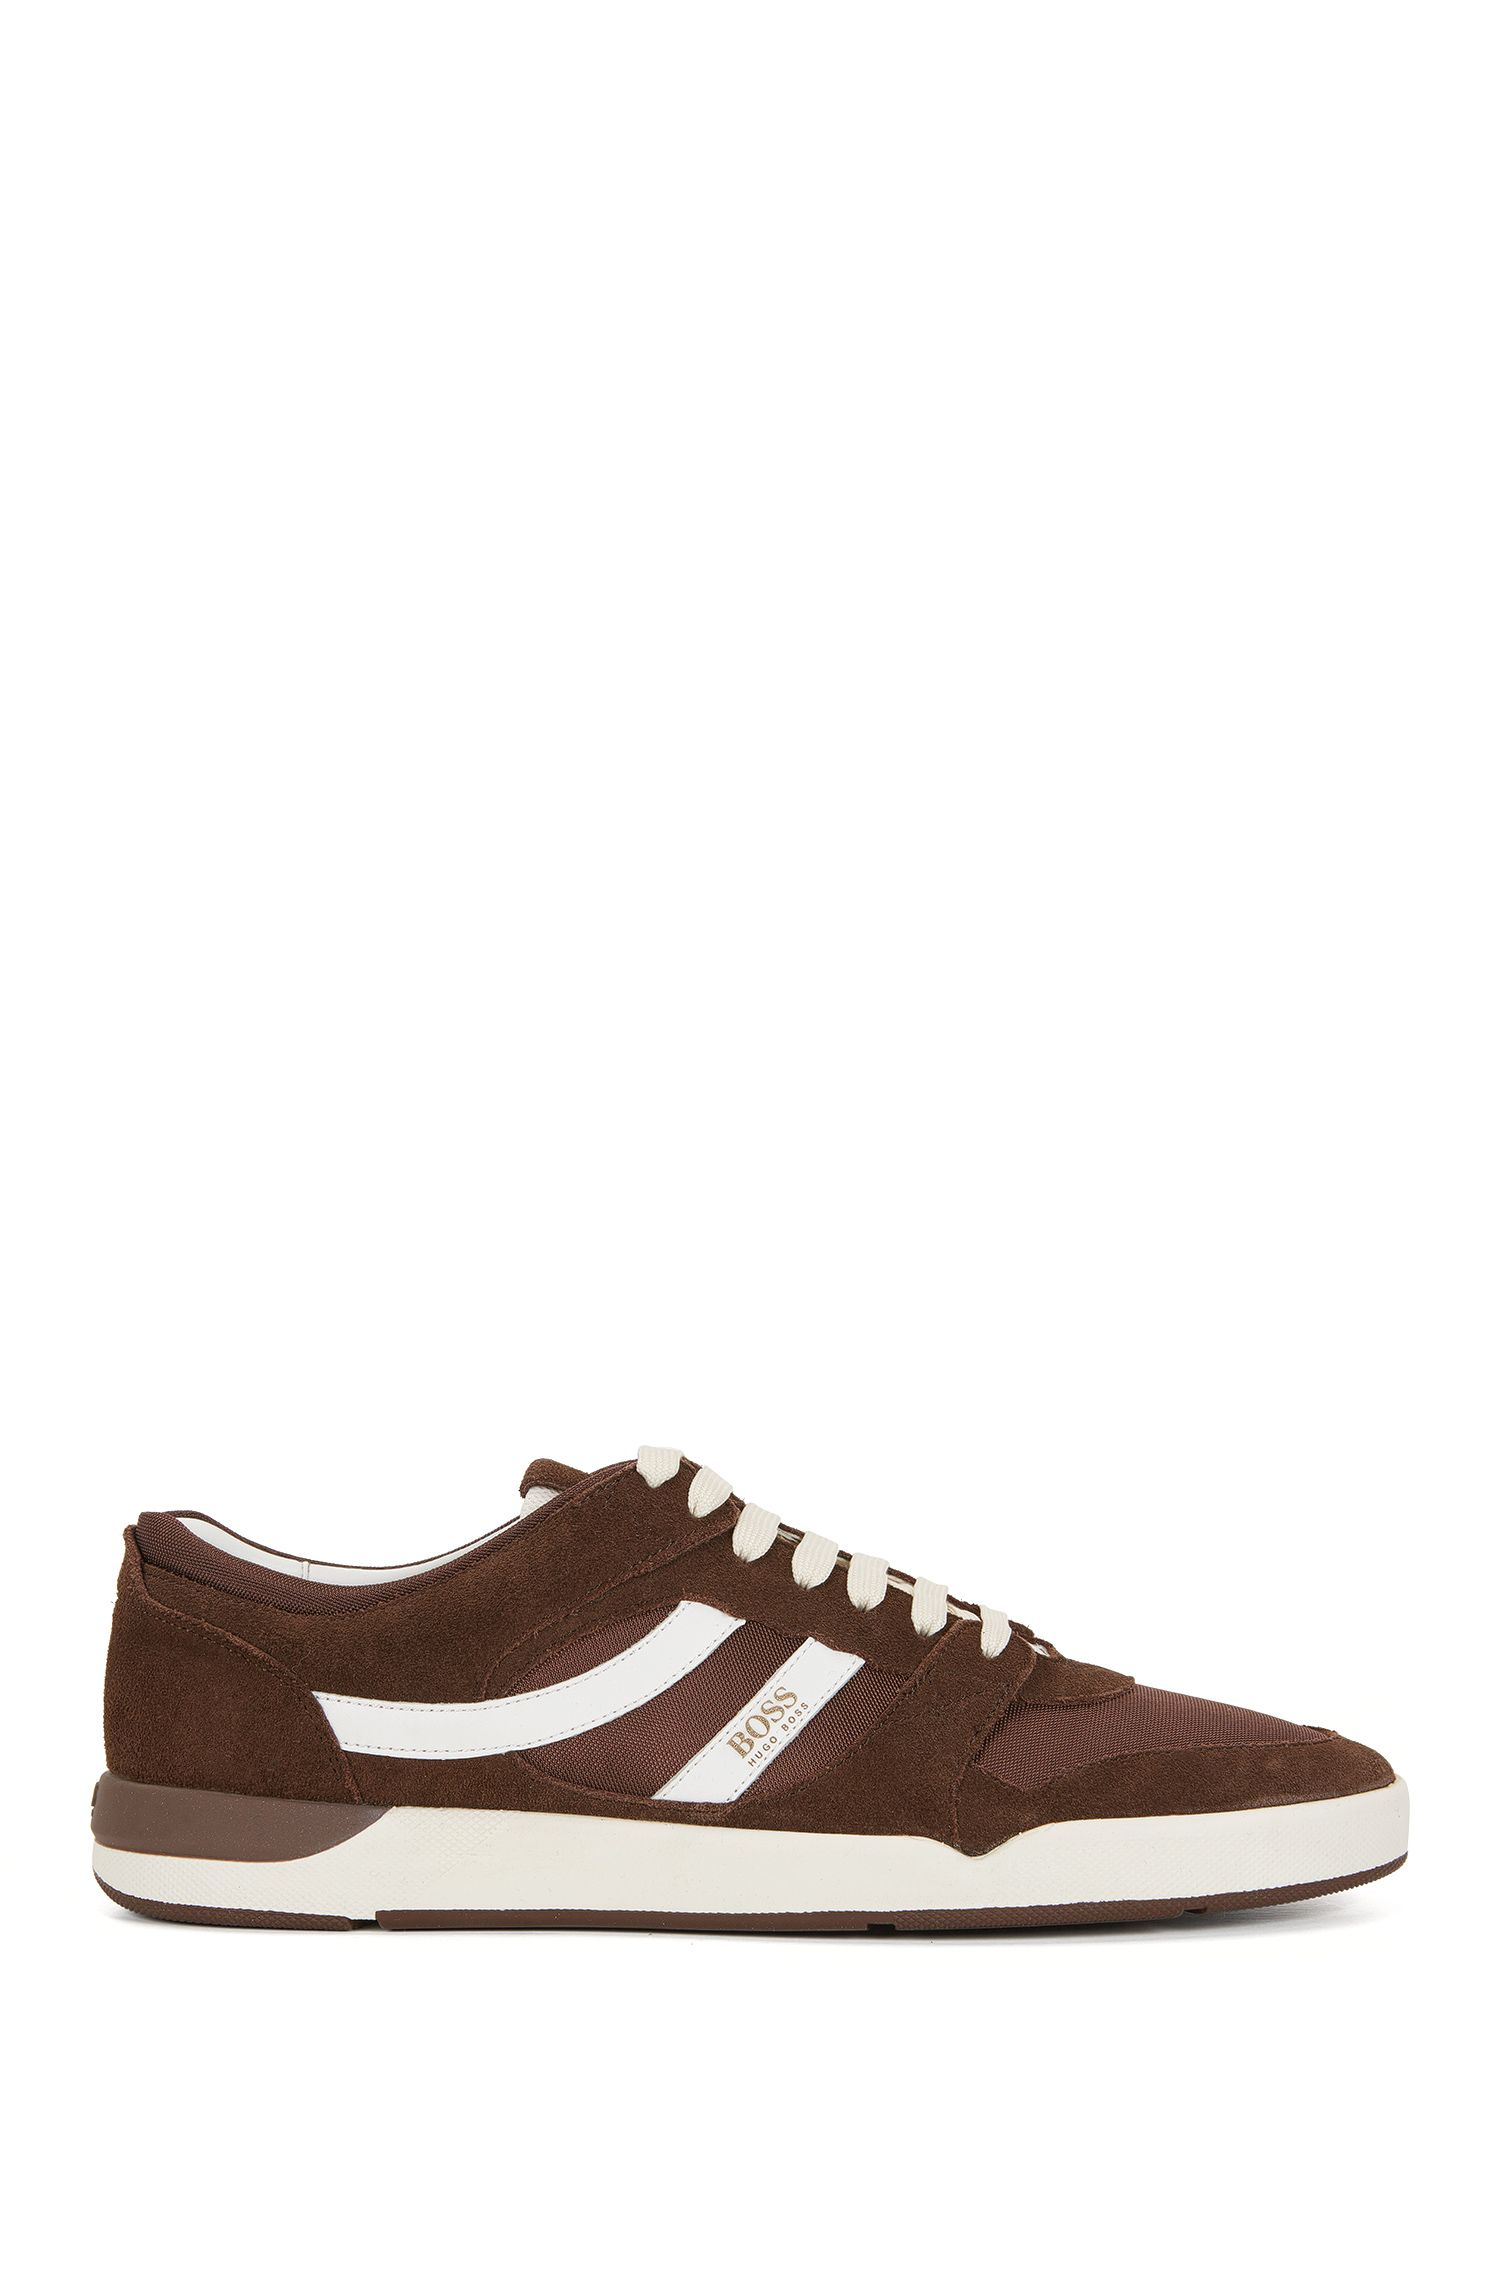 Sneakers low-top con struttura Strobel